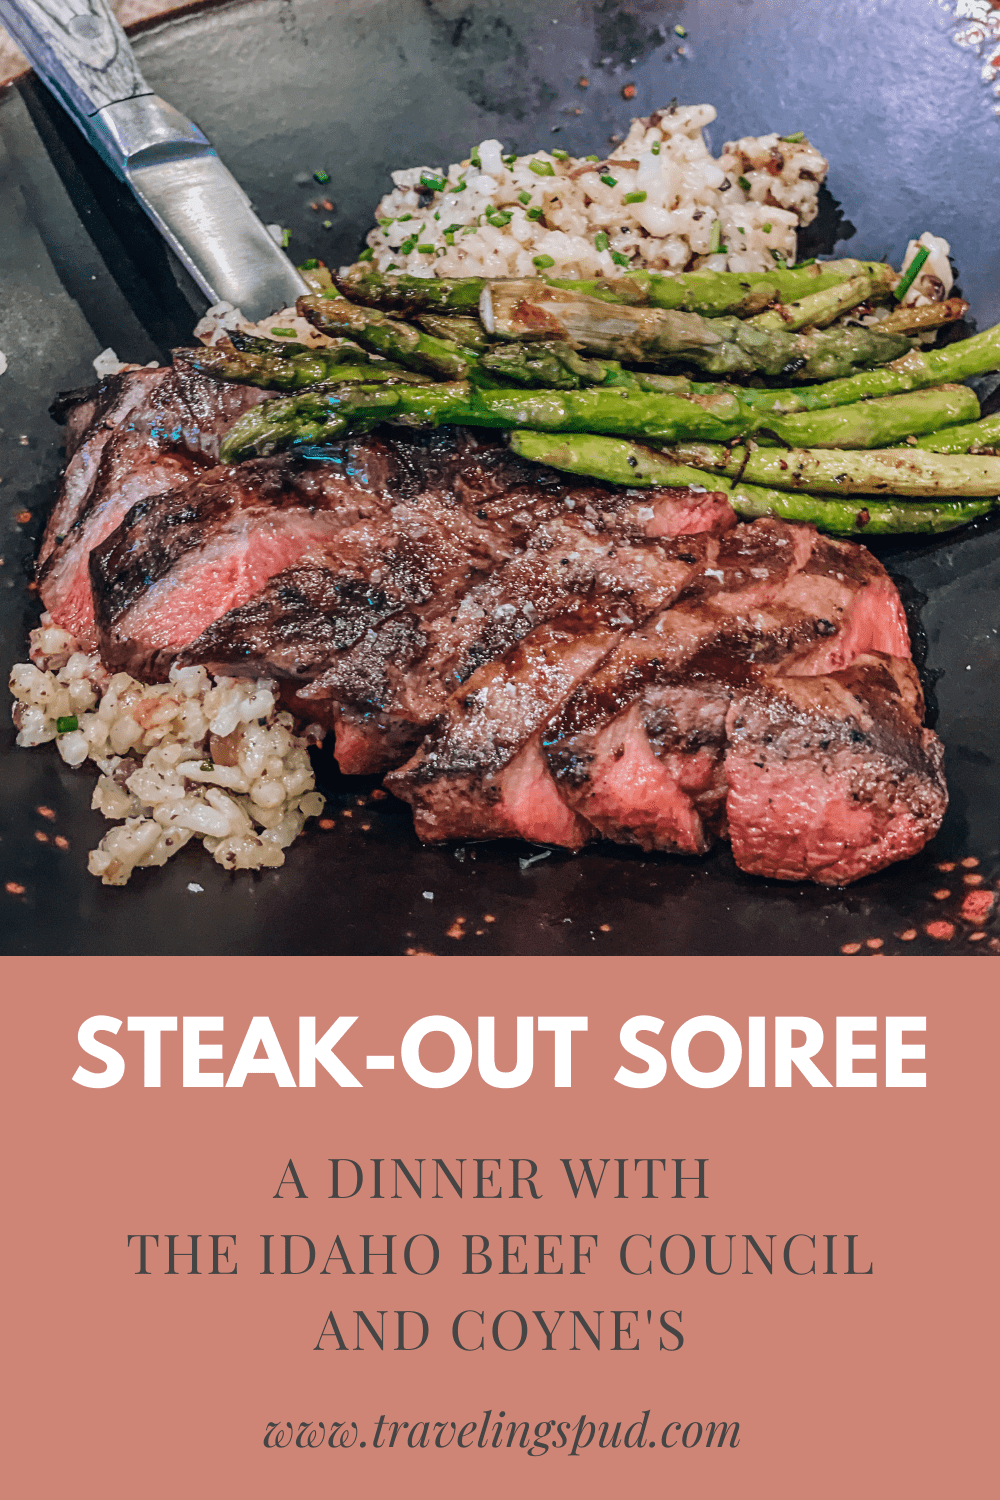 Steak-Out Soiree